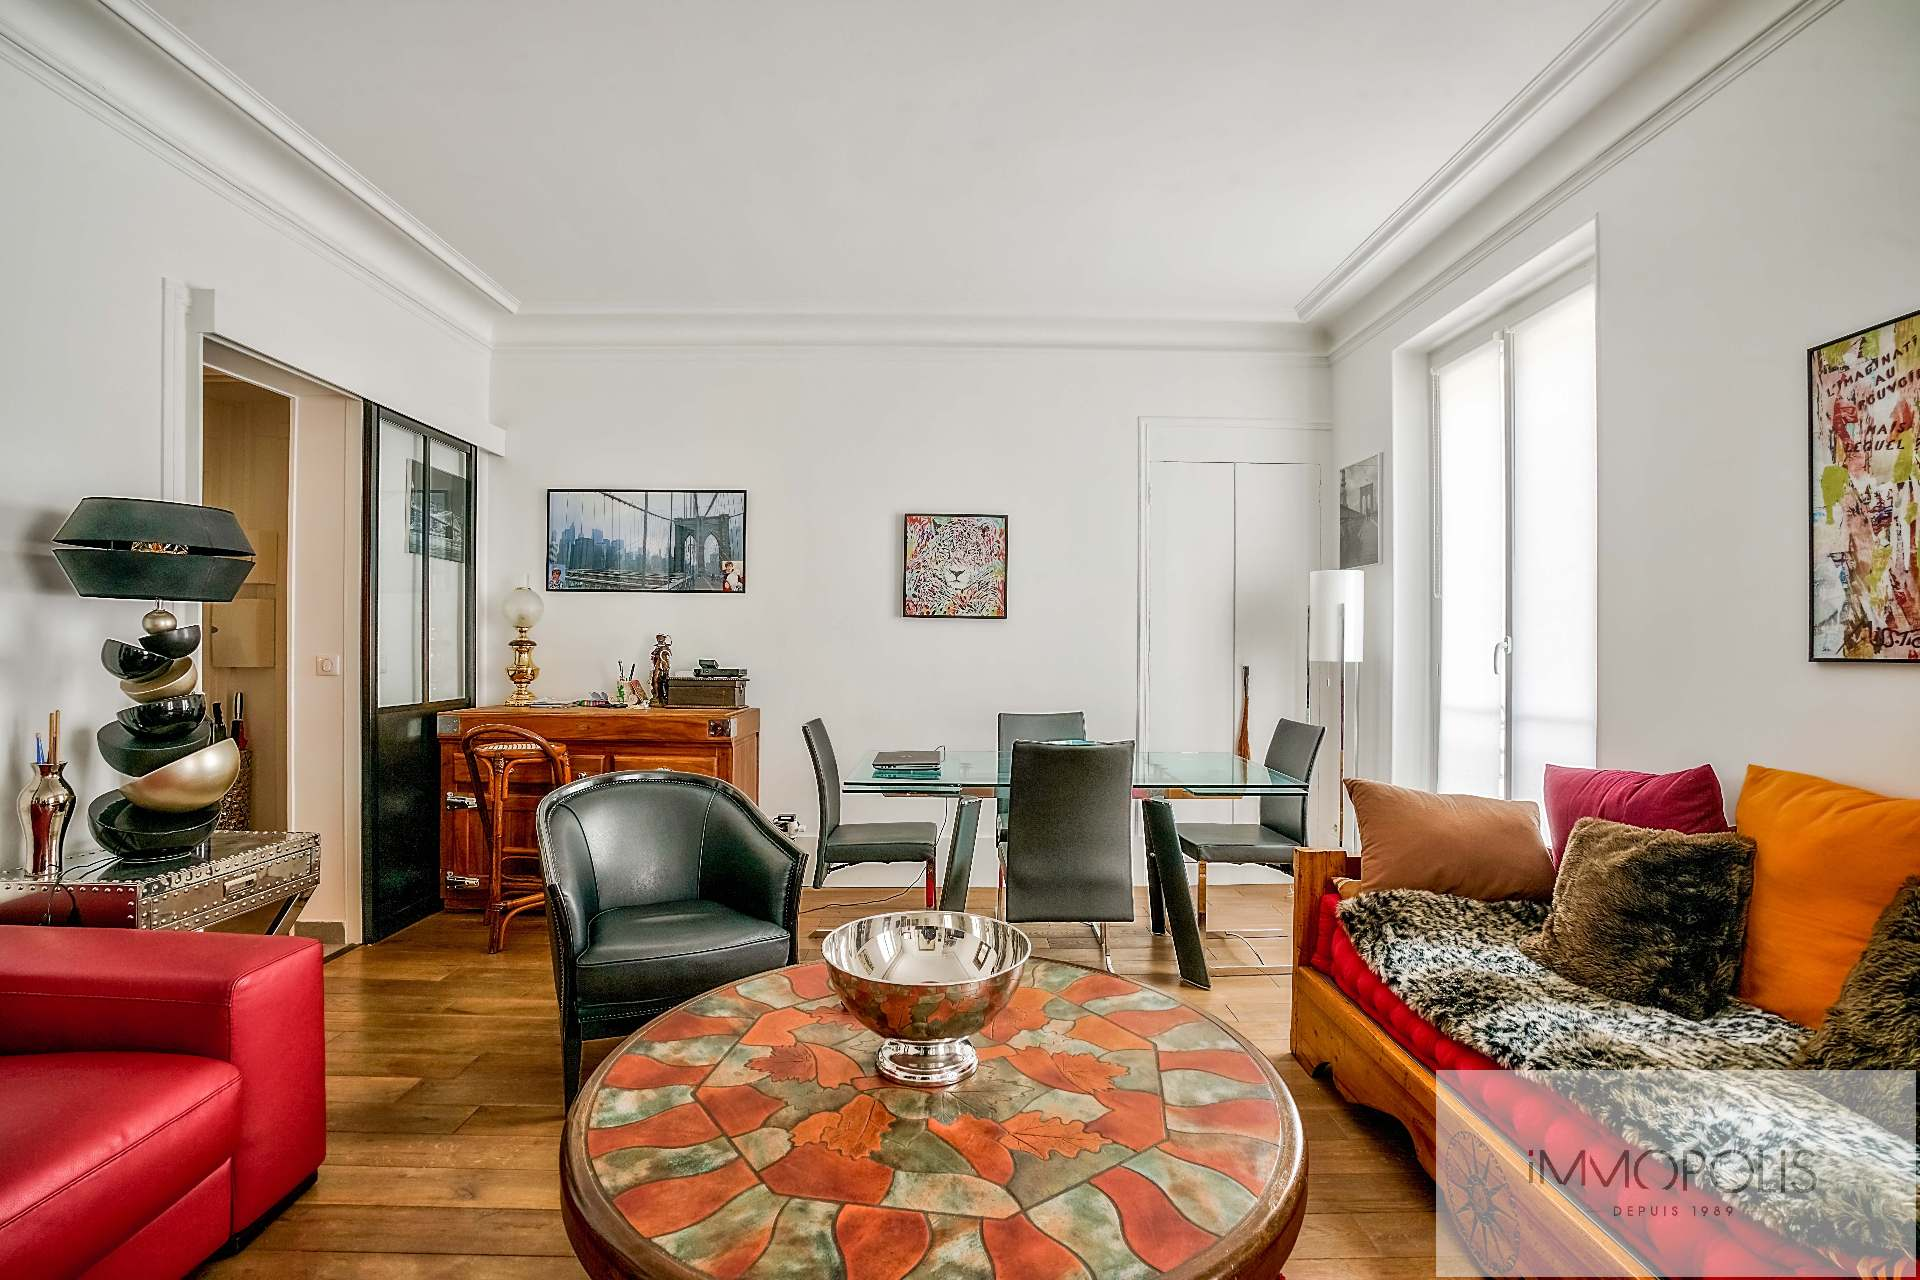 Abbesses, rue Constance: superb 3-room apartment (1 bedroom) on the 3rd floor with elevator: very nice amenities! 2